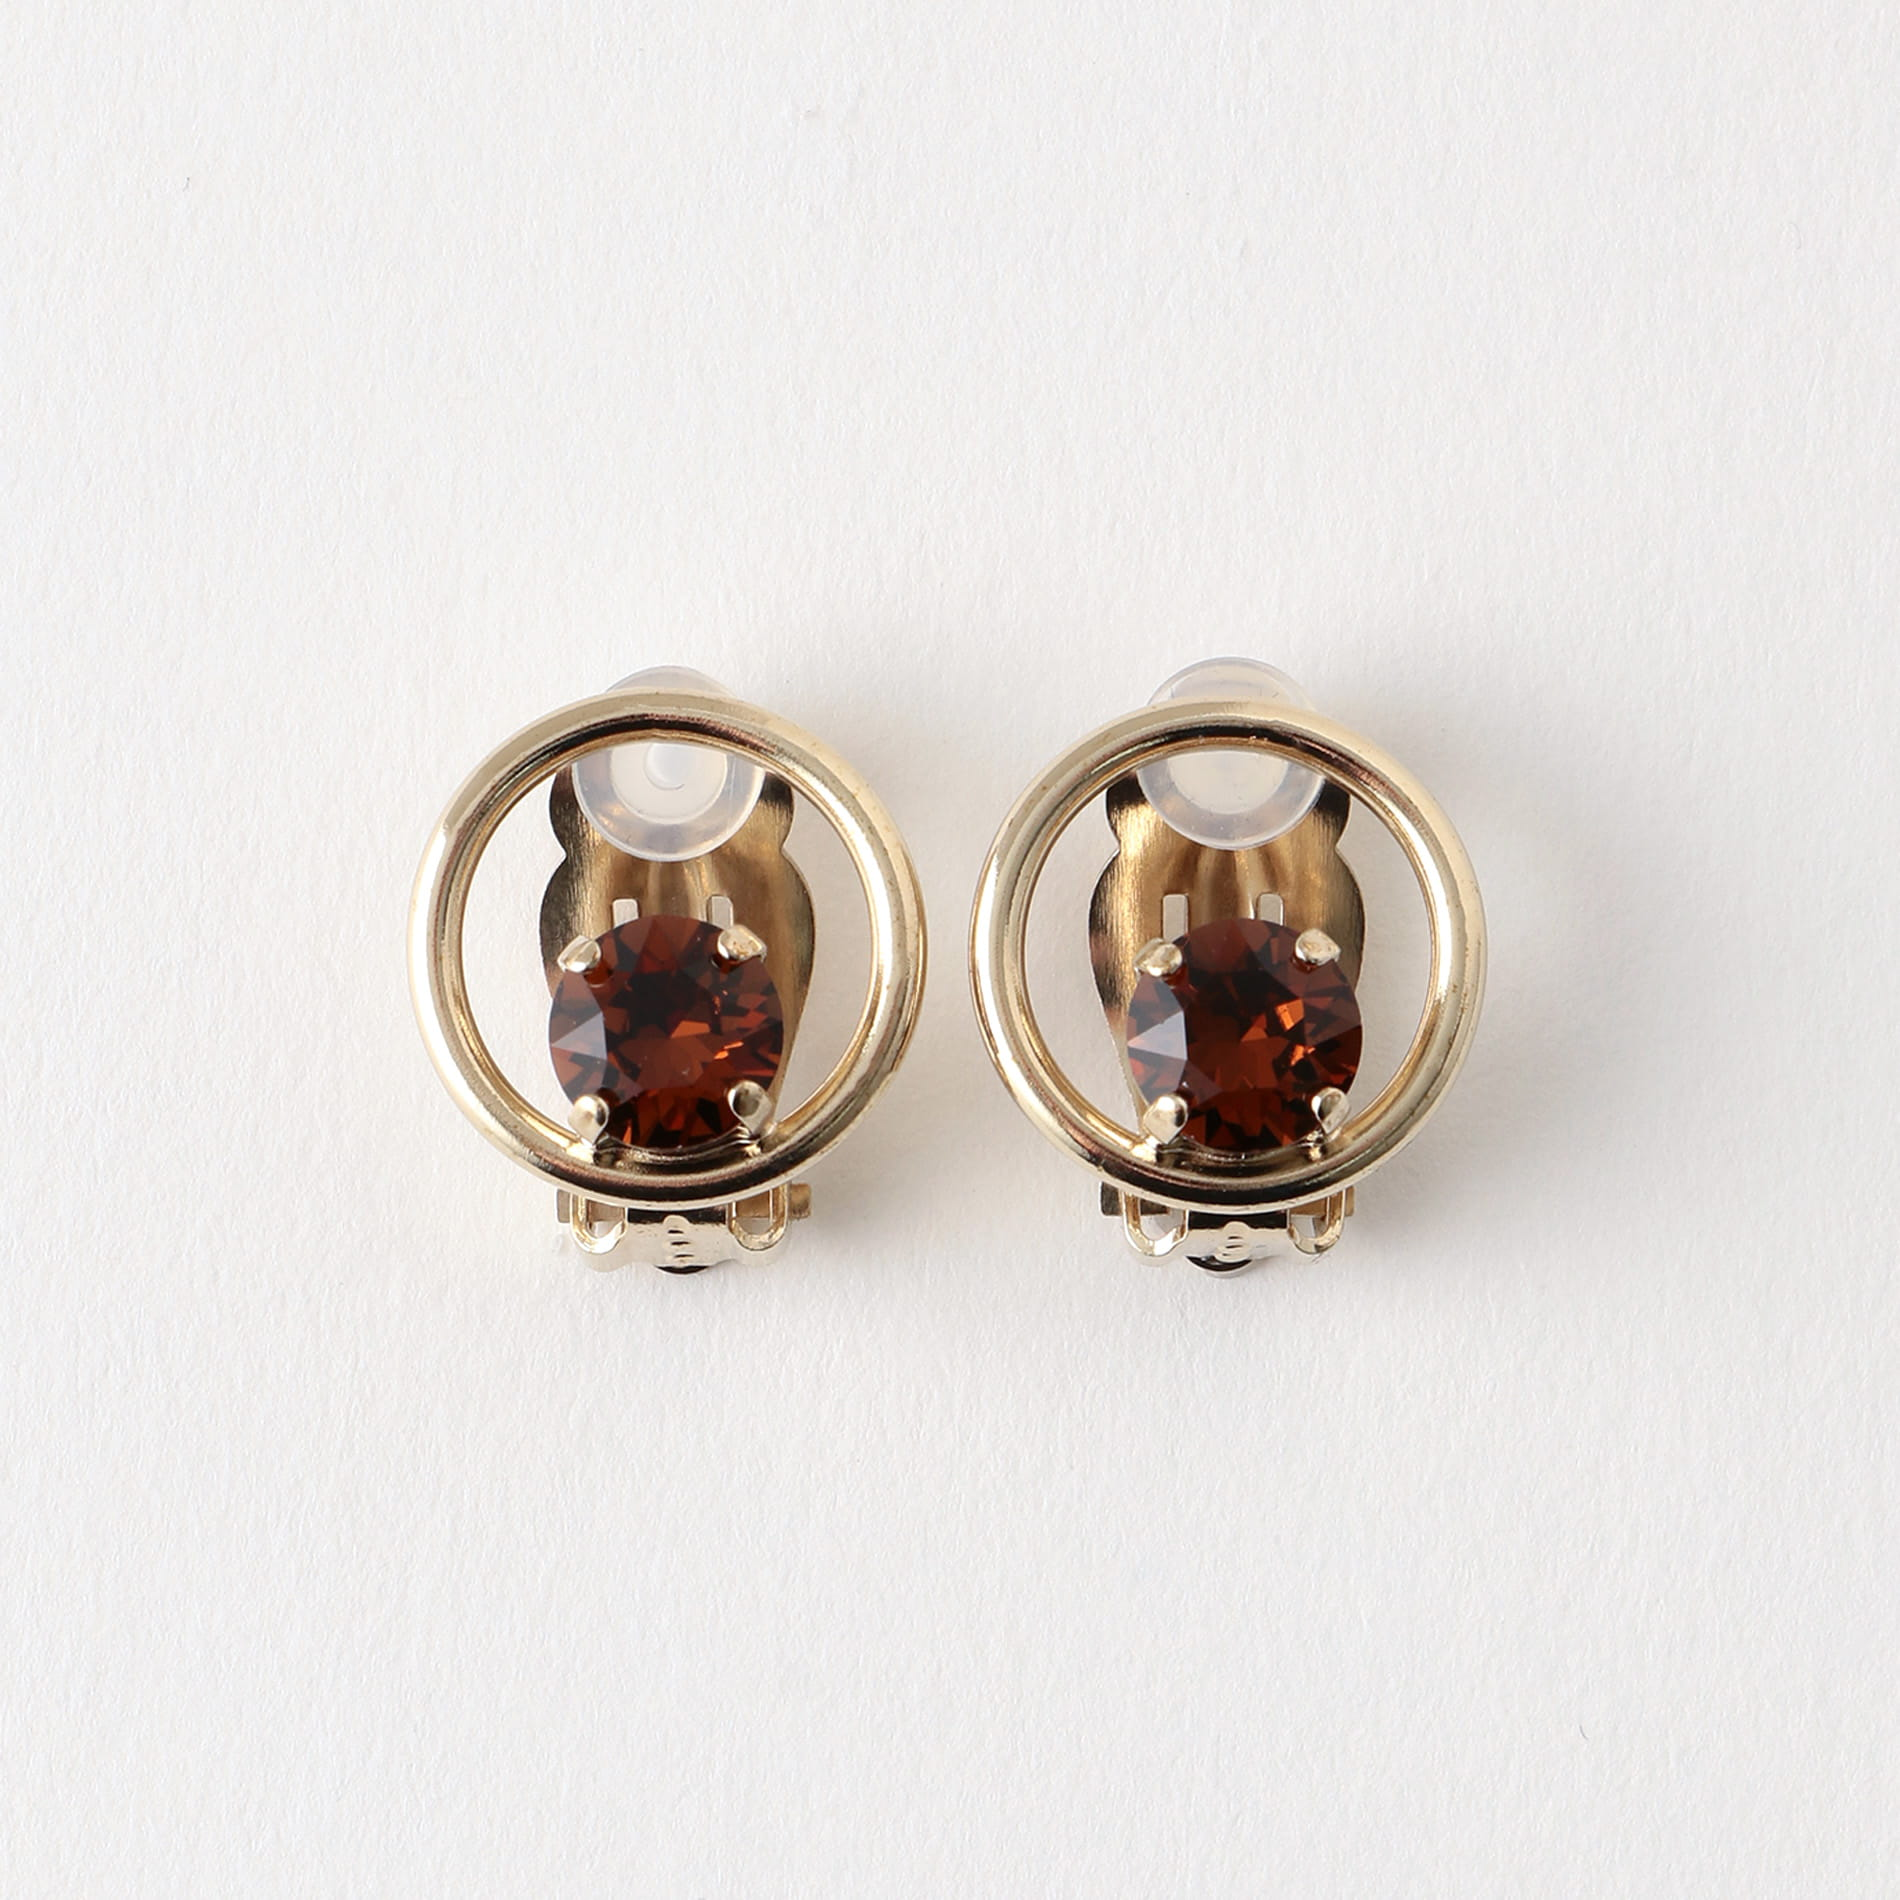 【JUSTINE CLENQUET】WOMEN イヤリング SUZANNE CLIP-ON EARRINGS 22J0SUZANNE2&3